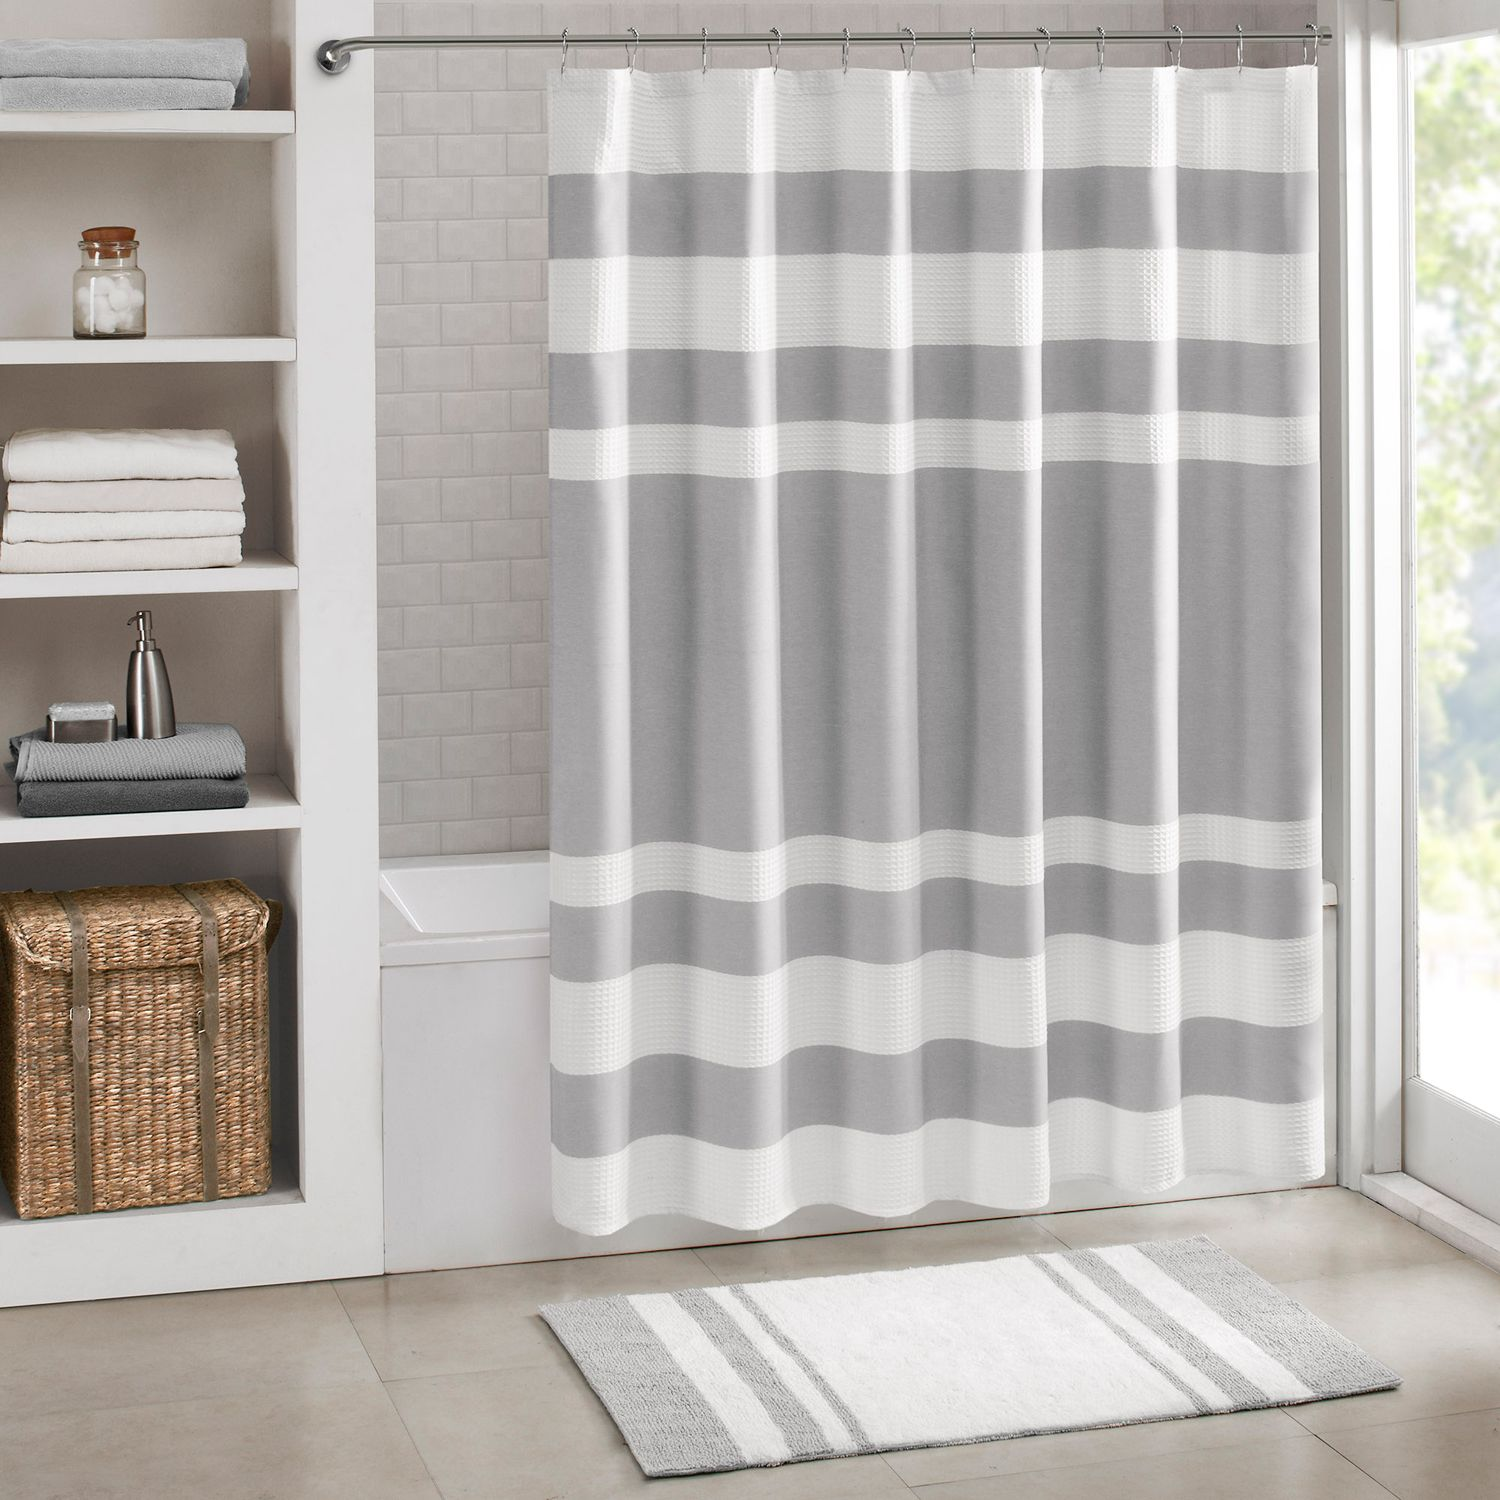 Exceptional Madison Park Spa Waffle Weave 3M Scotchgard Fabric Shower Curtain